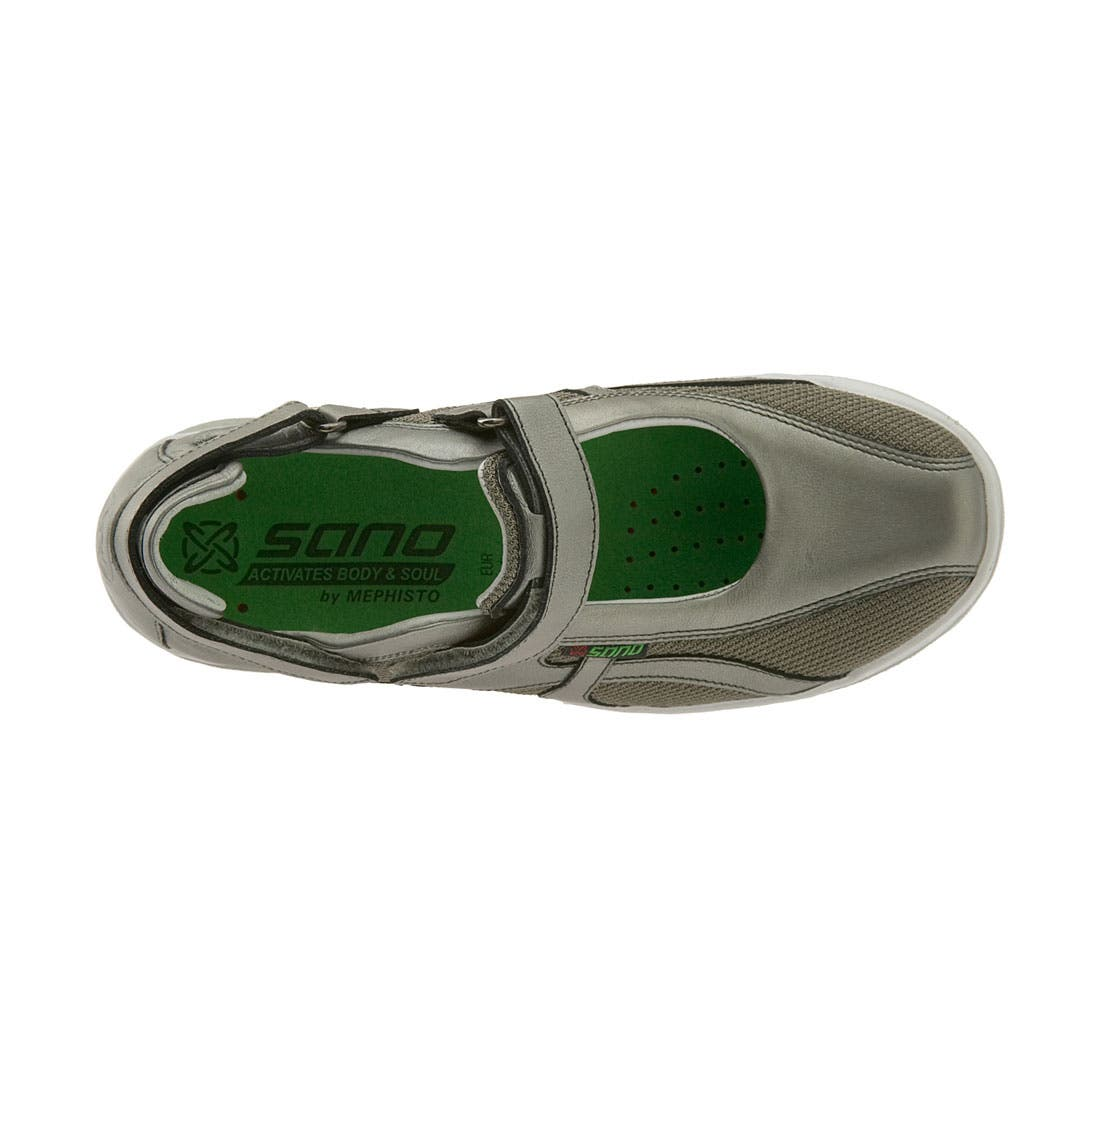 Sano by Mephisto 'Excess' Walking Shoe,                             Alternate thumbnail 19, color,